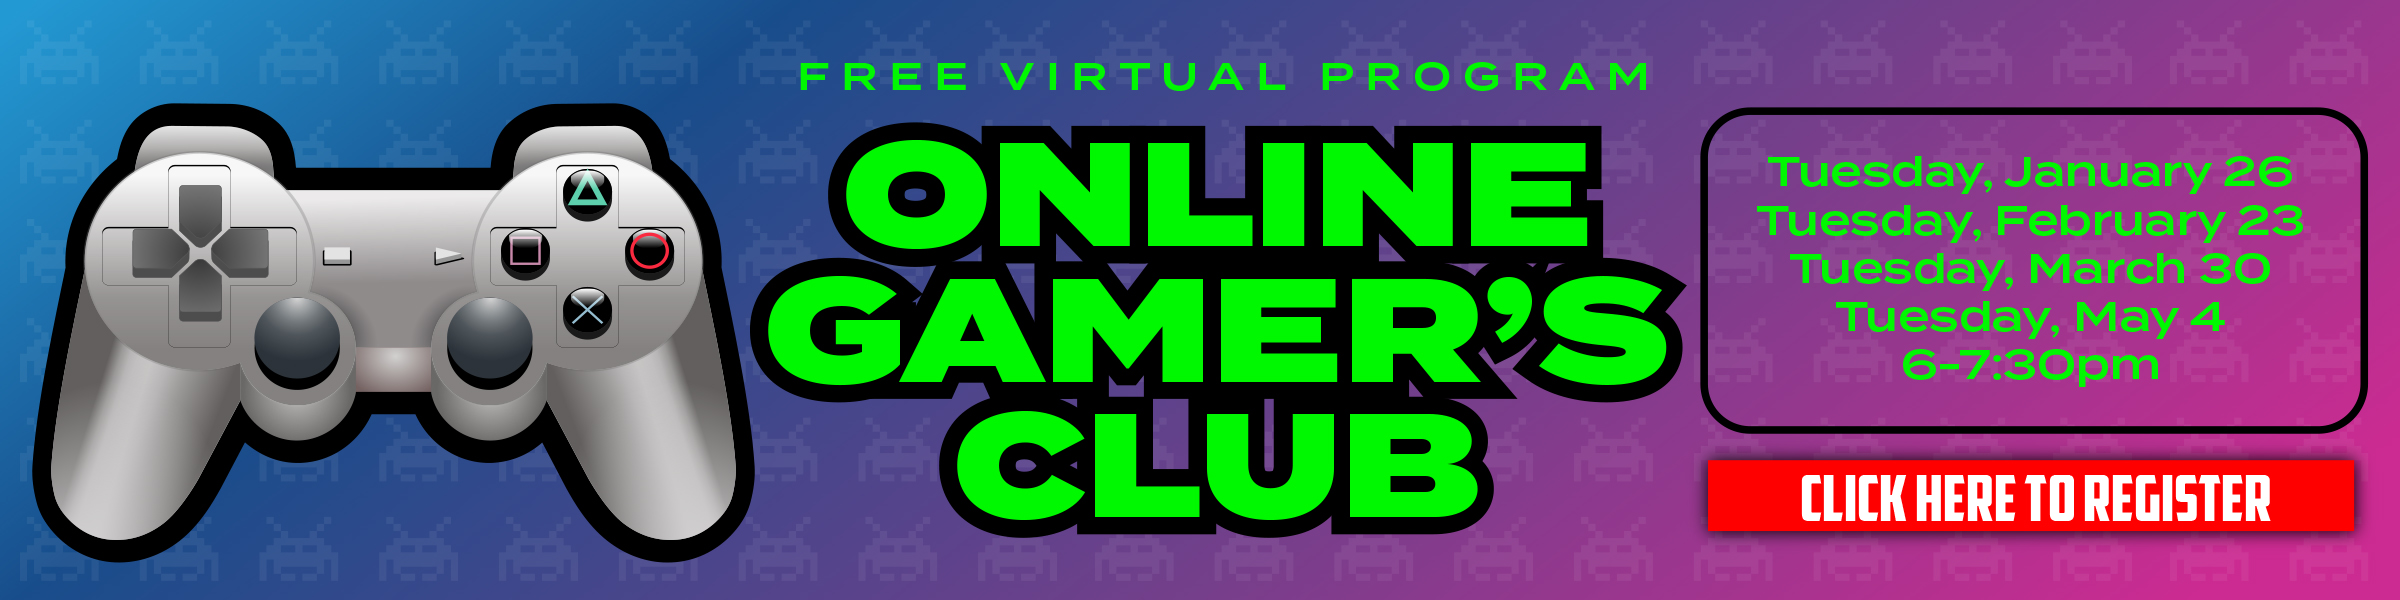 Online Gamers Club